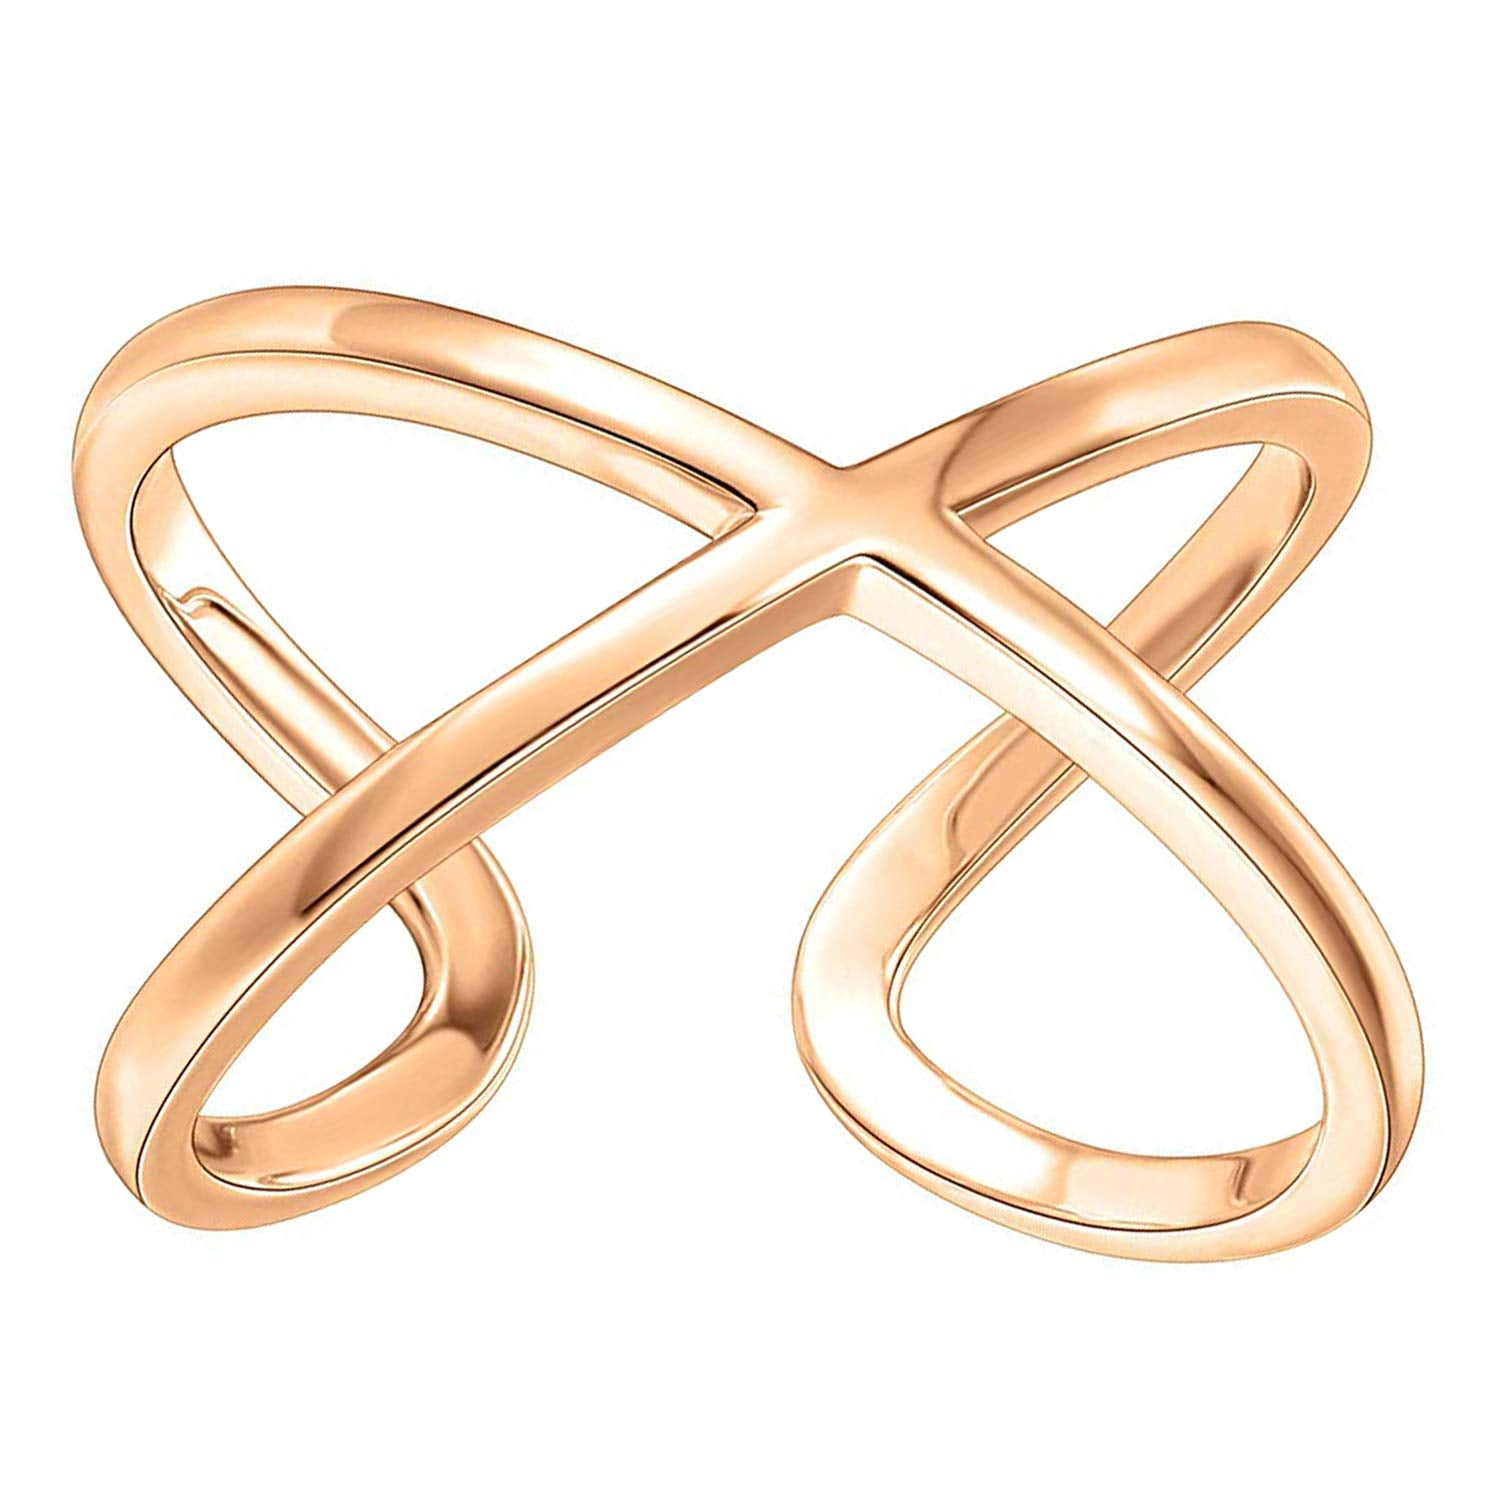 14K Gold Plated Crossover X Stackable Rings | Gold Rings for Women